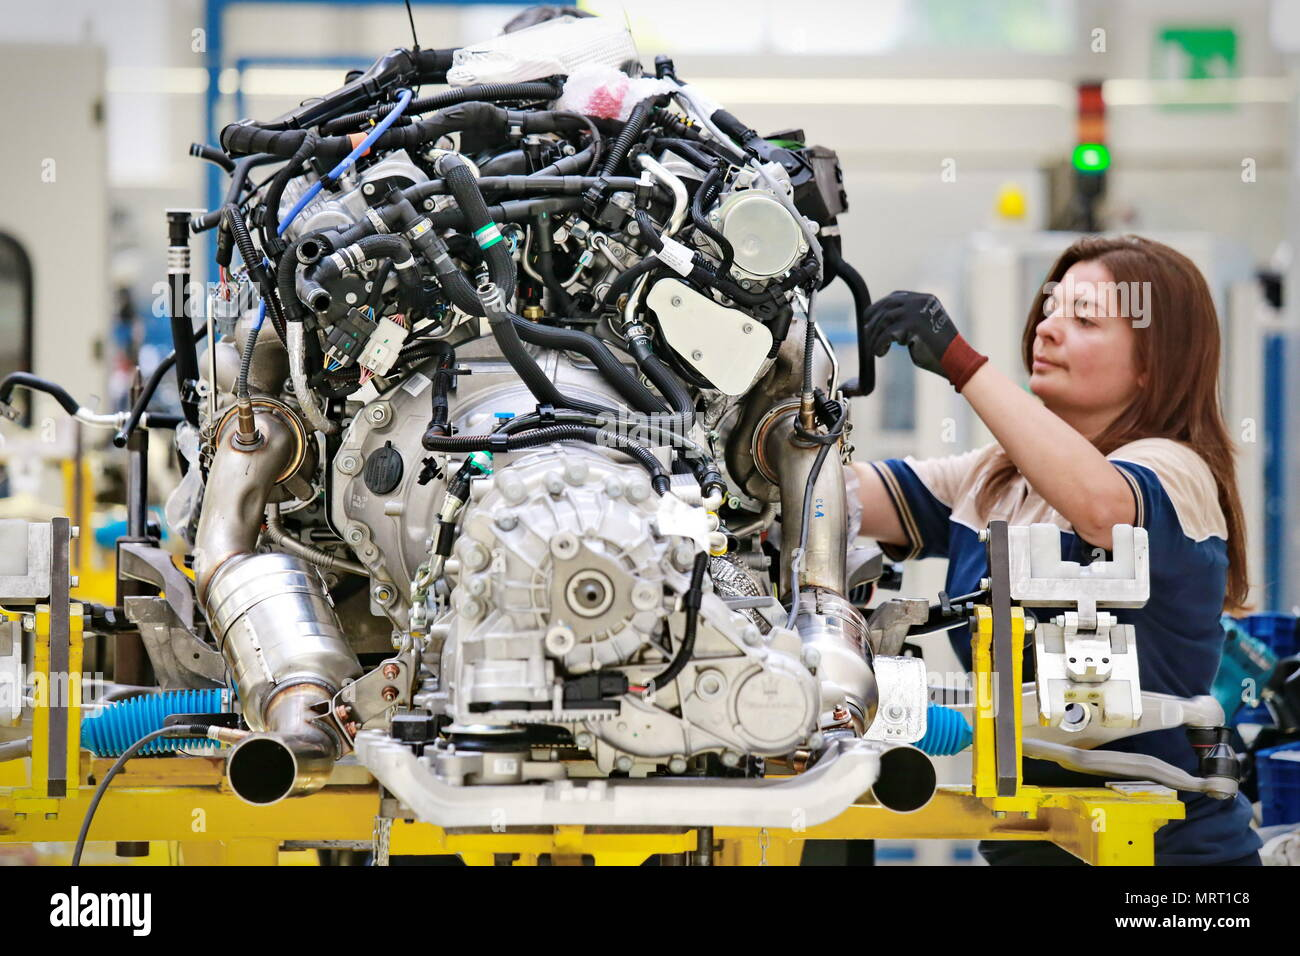 Grugliasco, Italy - June 30, 2014: car production line with unfinished cars in a row at Maserati factory. - Stock Image